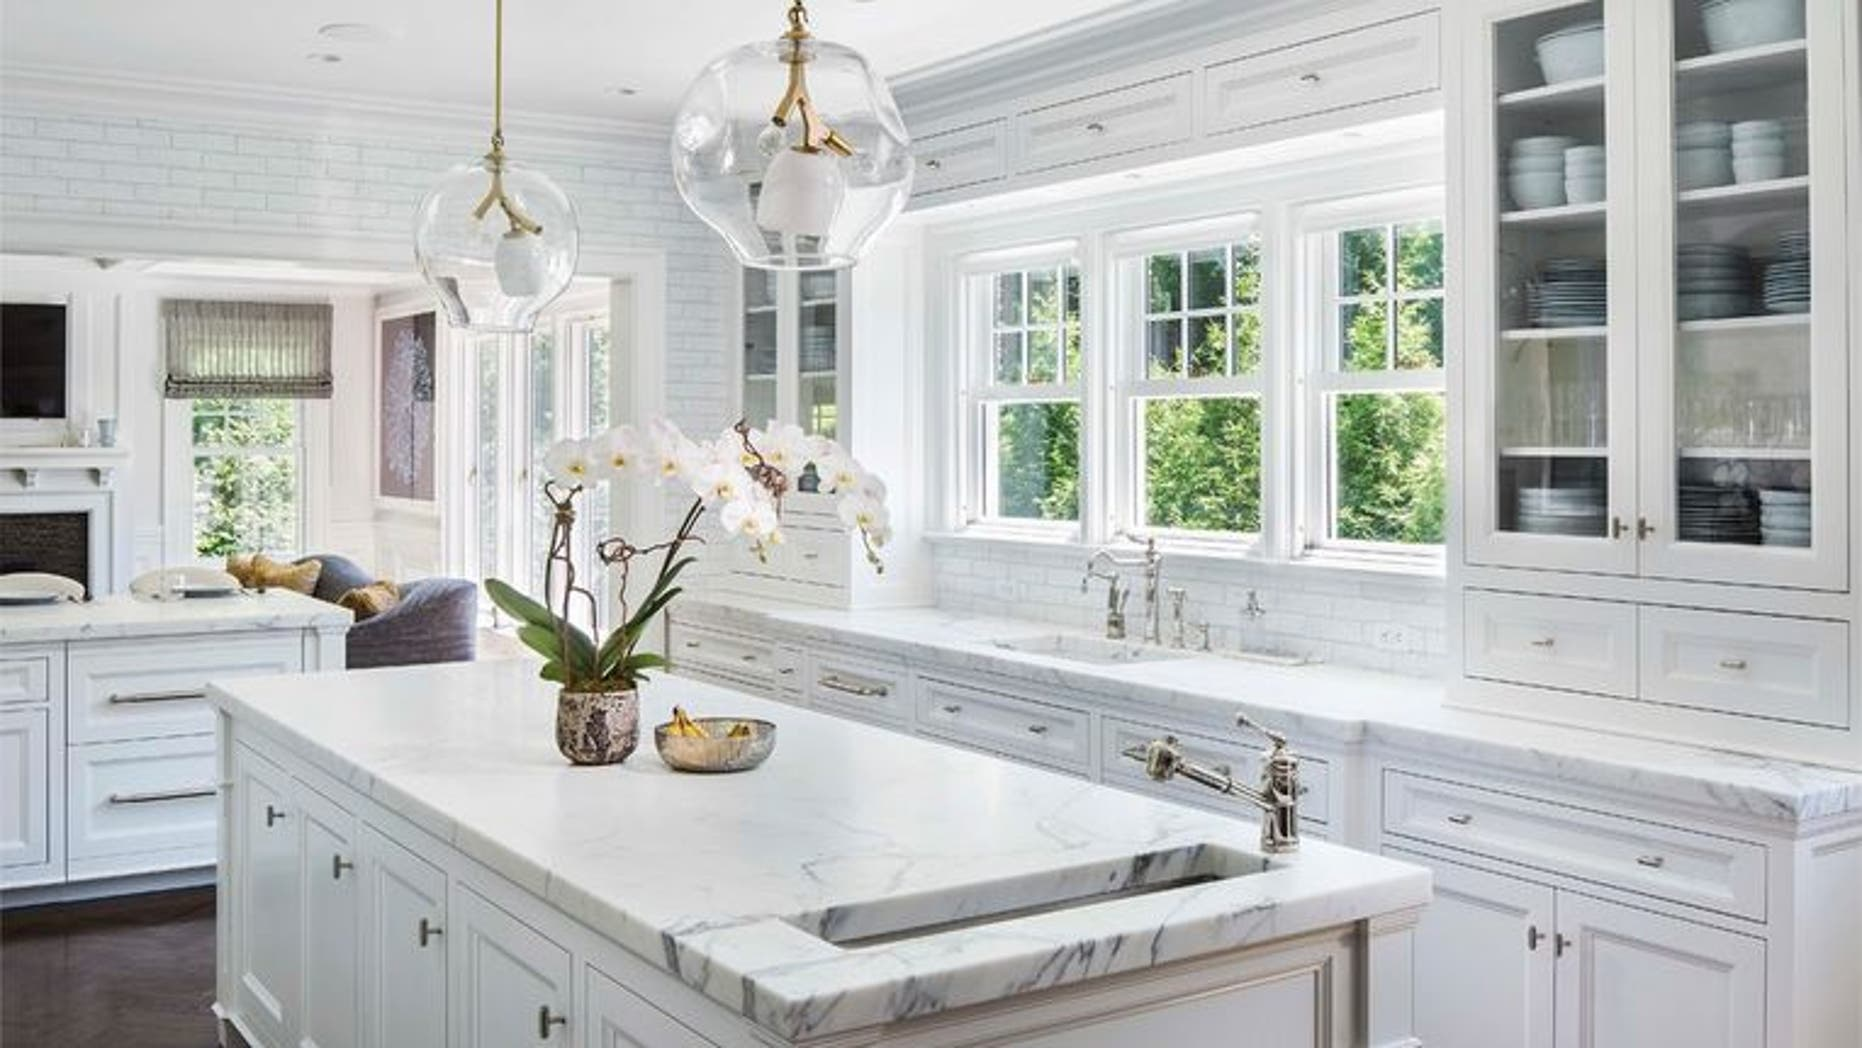 8 must know techniques for keeping your kitchen cabinets sparkling rh foxnews com how to clean factory painted kitchen cabinets how to clean greasy painted kitchen cabinets